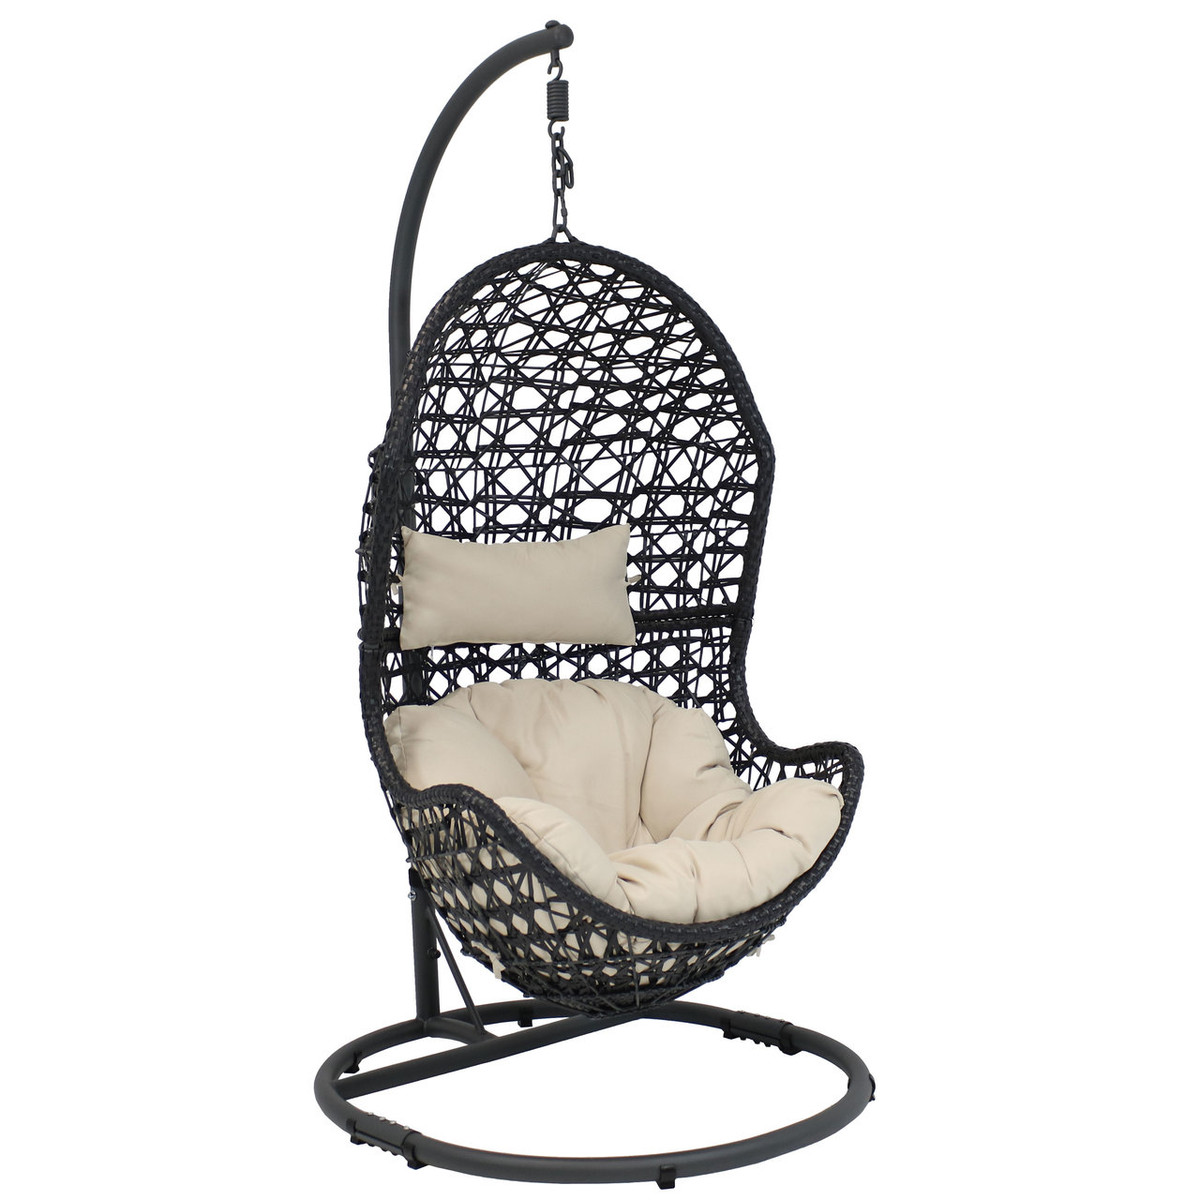 Egg Wicker Chairs Outdoor Sunnydaze Cordelia Hanging Egg Chair With Steel Stand Set Resin